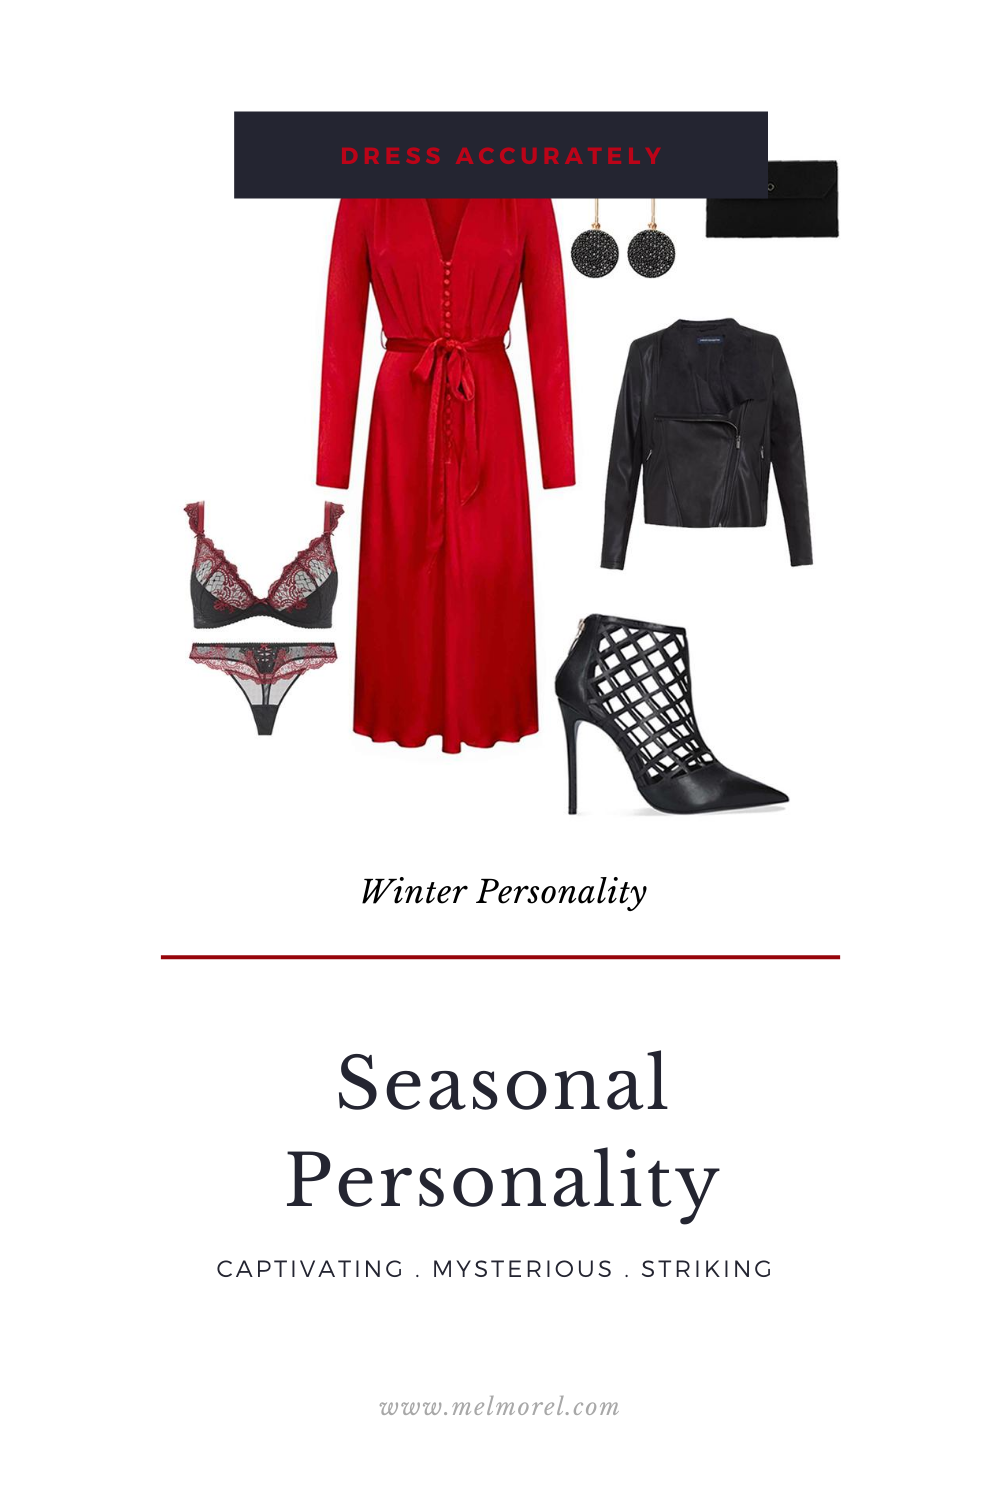 Winter Personality - PU waterfall jacket - red midi dress - black cage stiletto heels - black suede envelope clutch - black diamond earrings - deep plunge from aubade - mini coeur brief from aubade